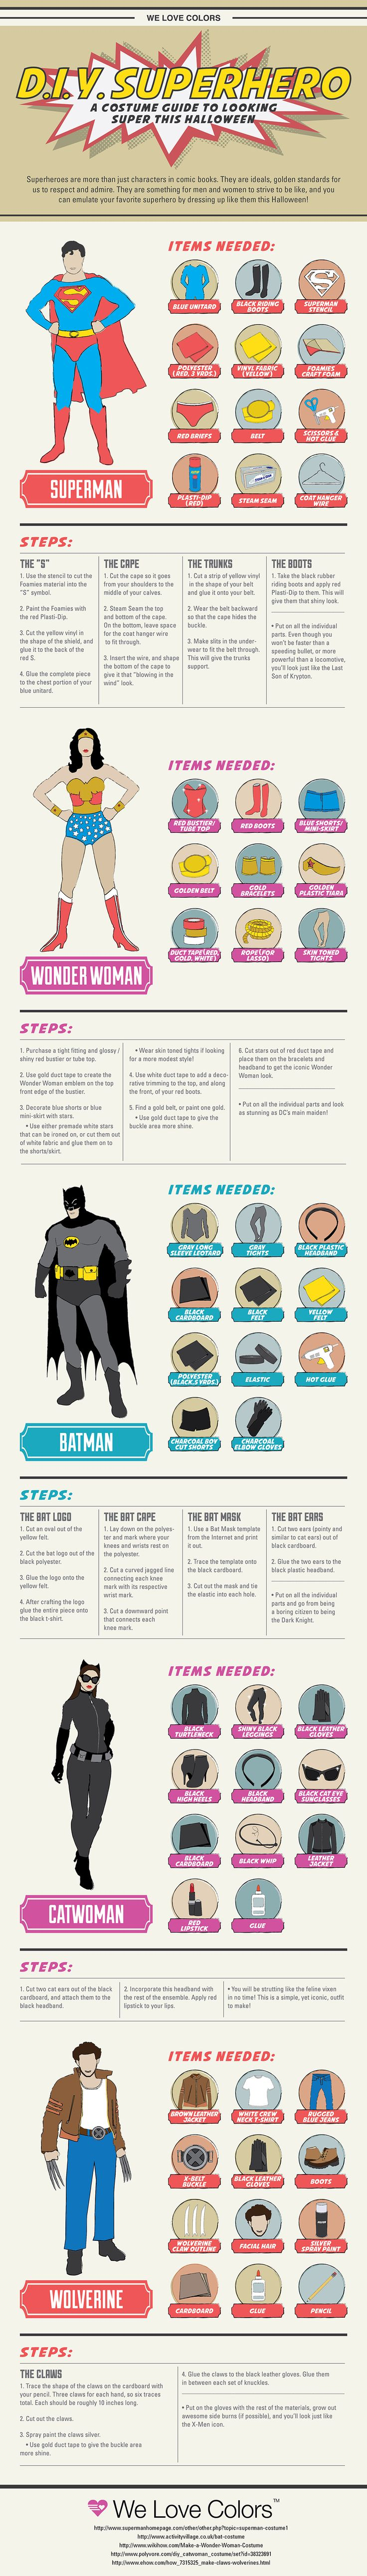 super hero costume infographic